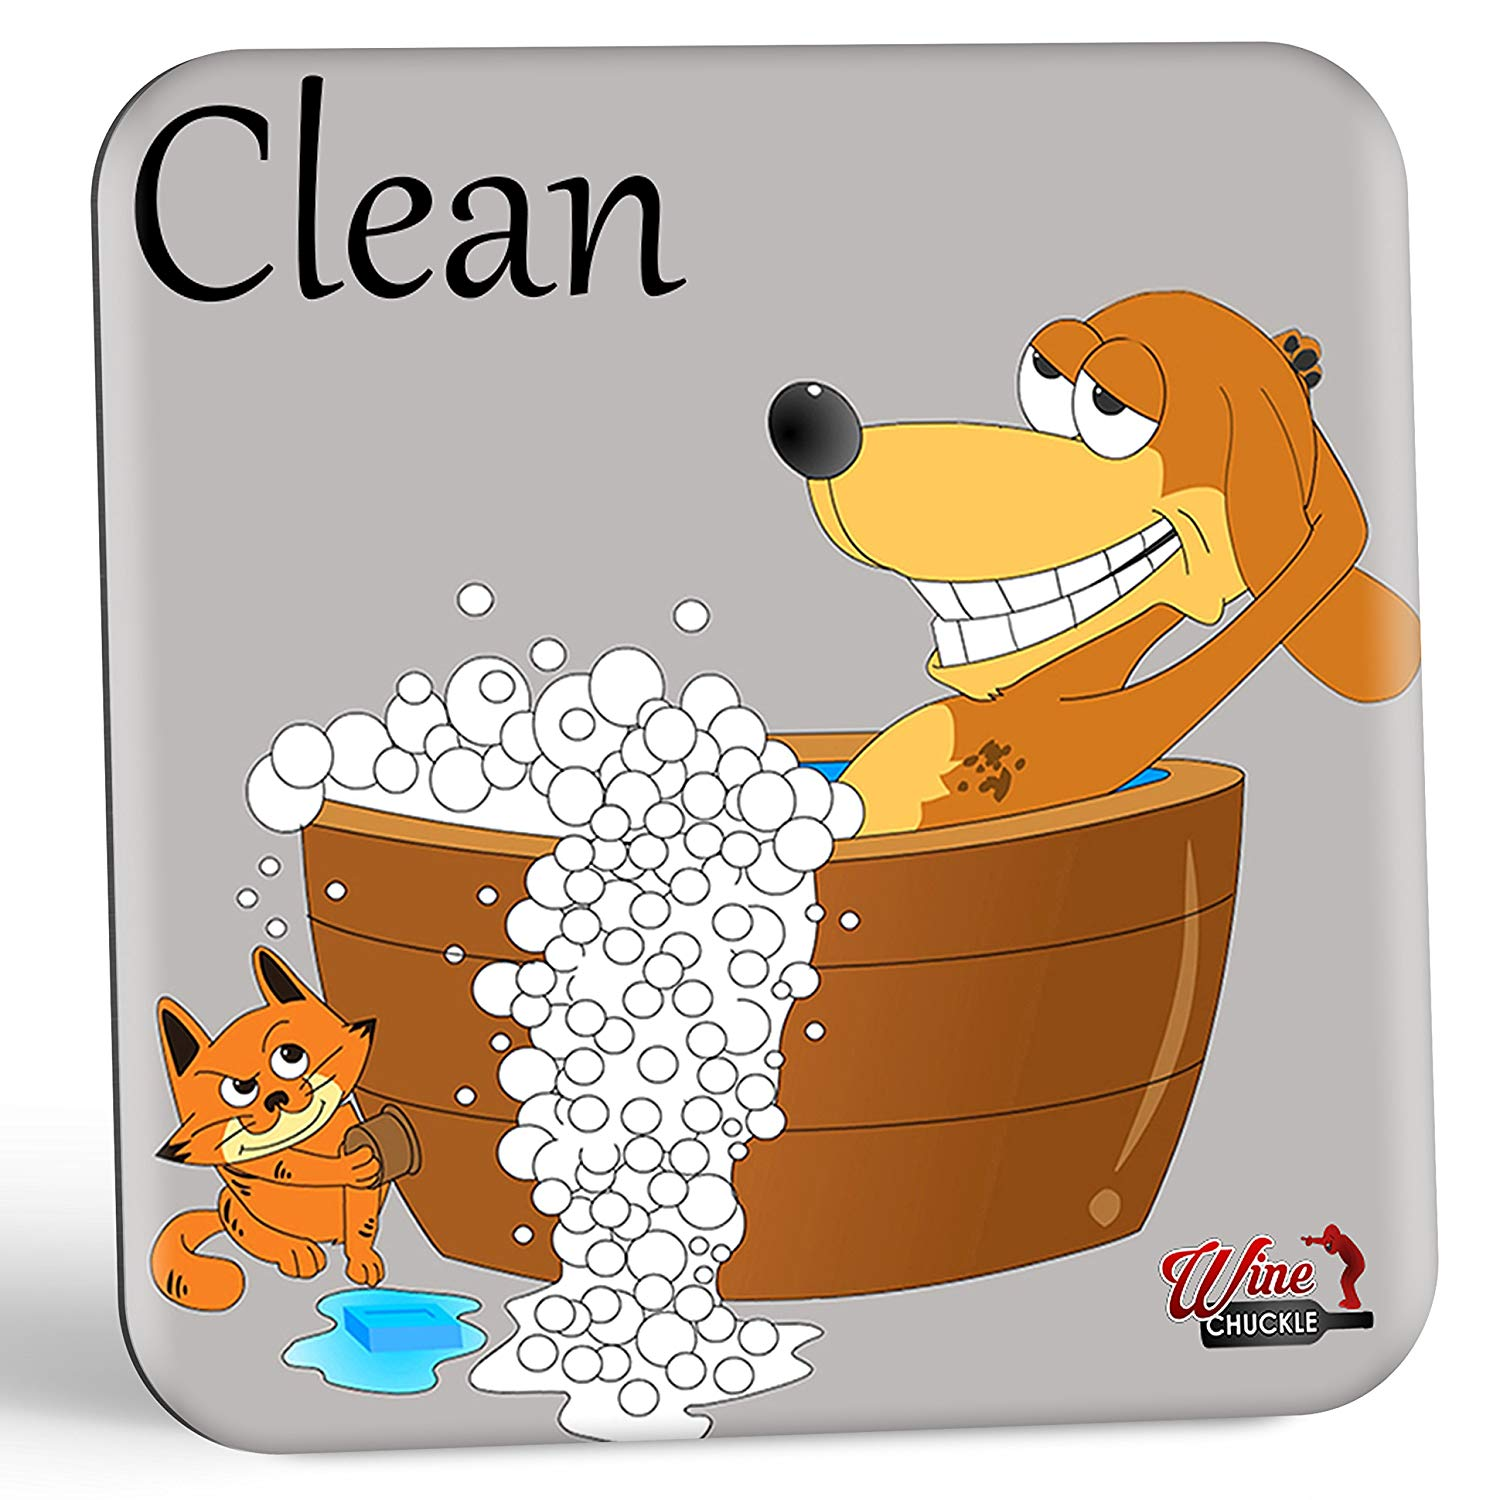 Dish doggy dirty magnet. Dishwasher clipart clean dishwasher